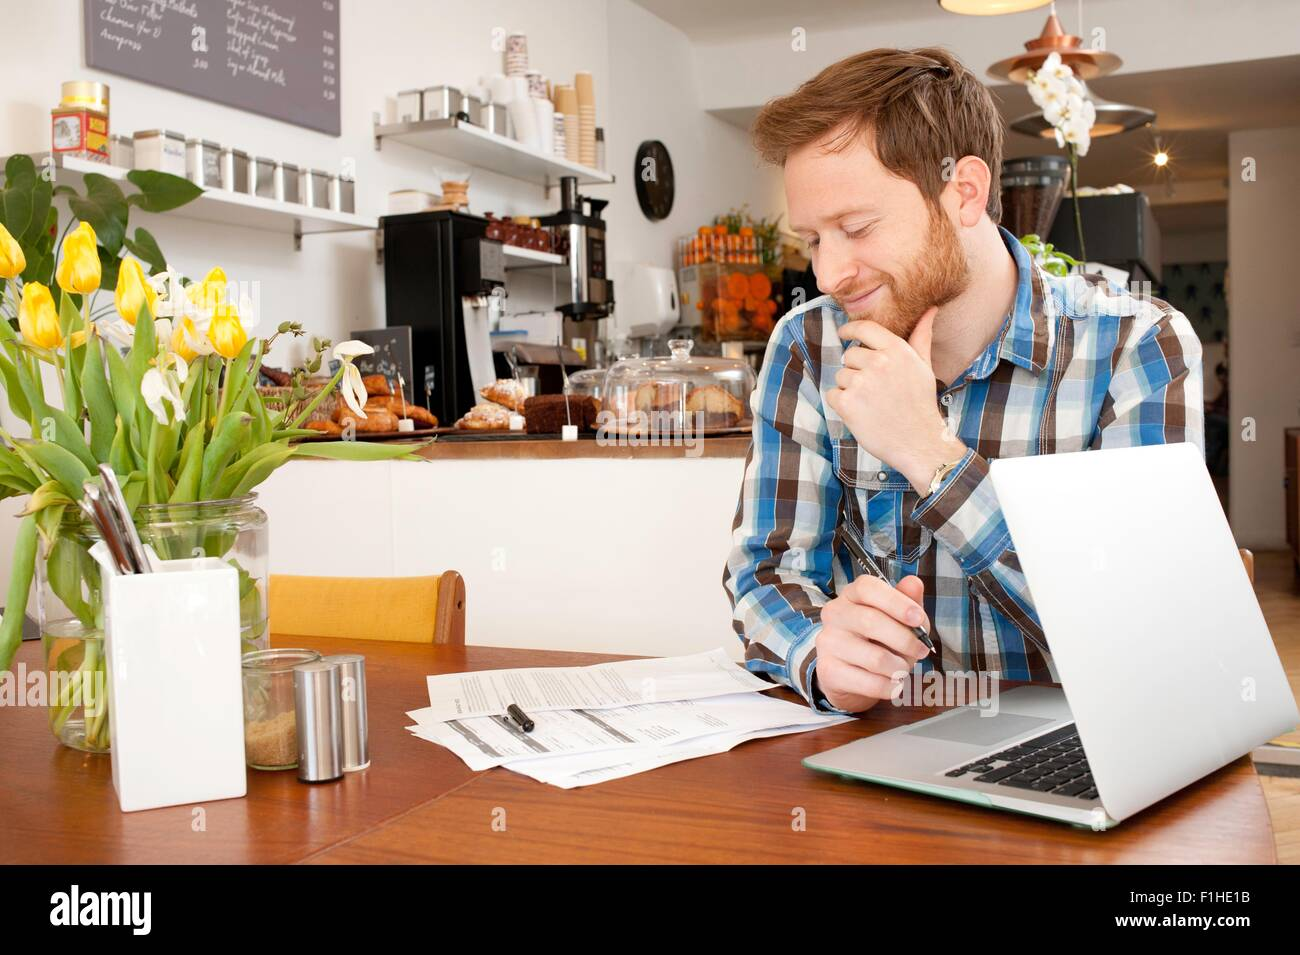 Male customer filling in application form in cafe - Stock Image